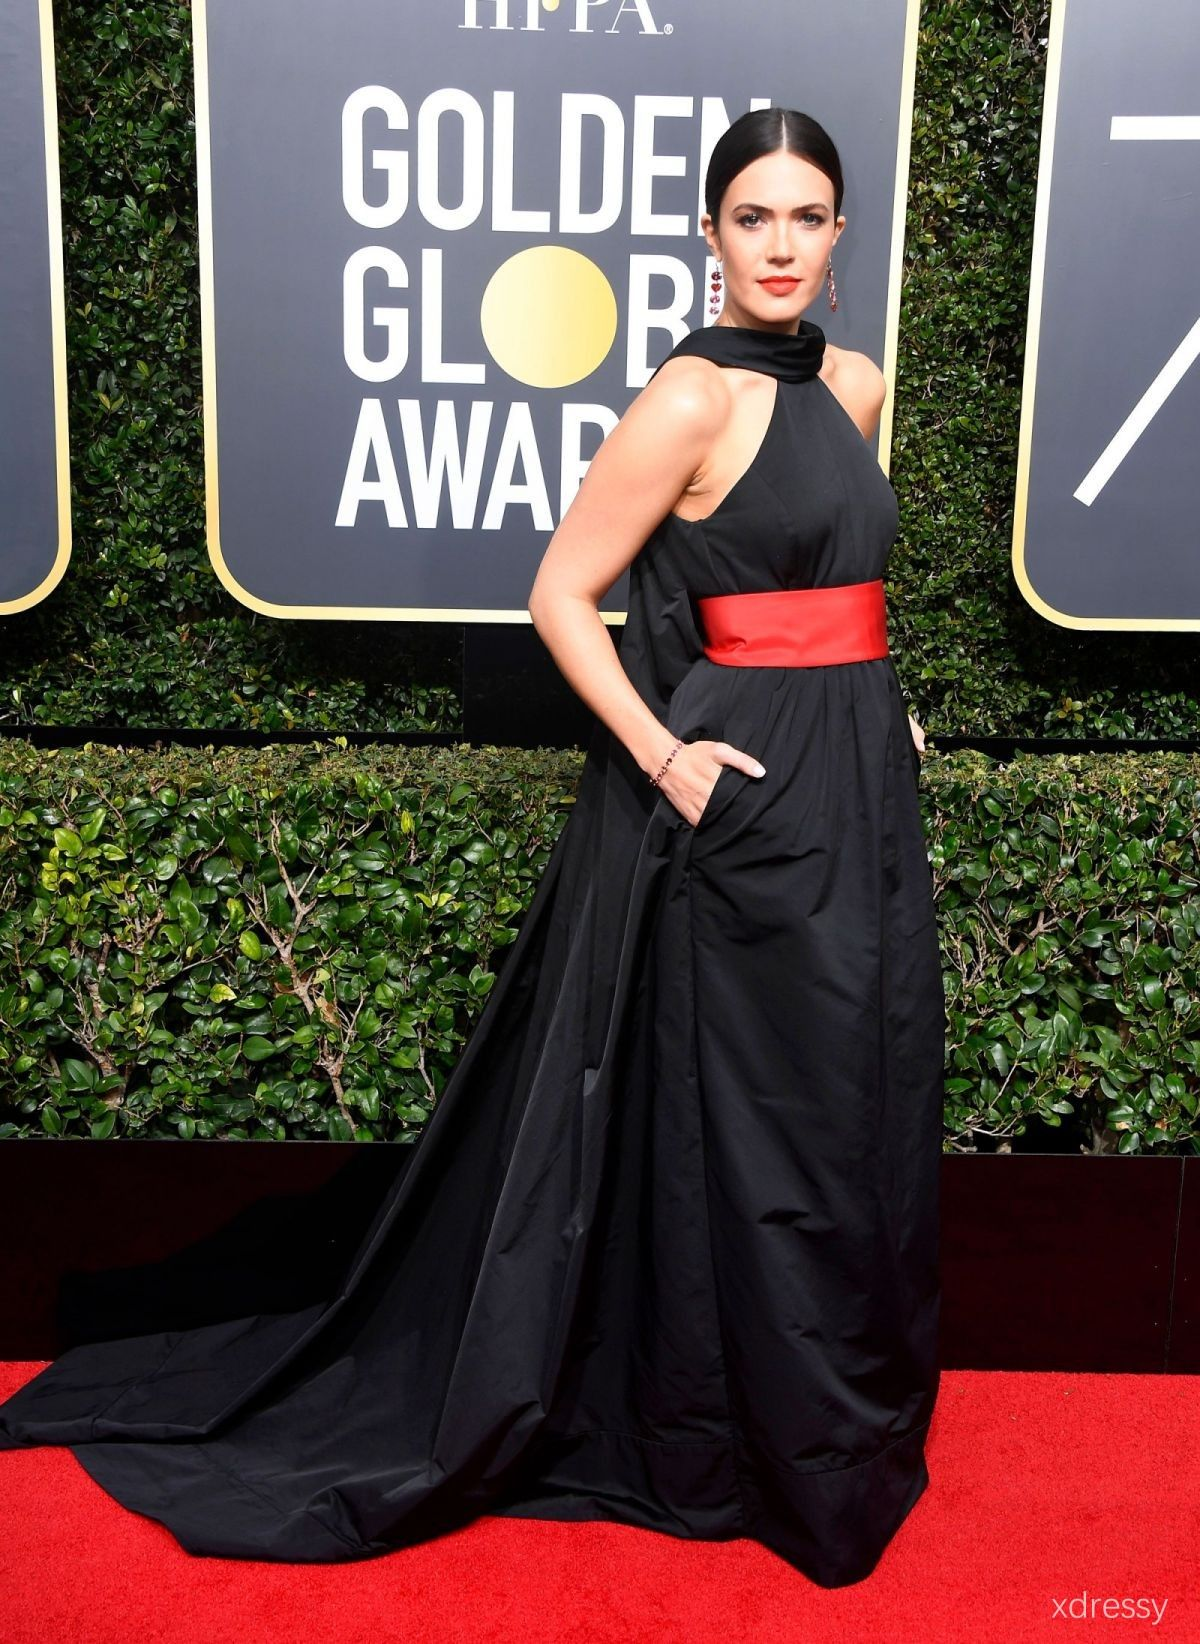 Mandy moore black satin halter neck with red band court train prom